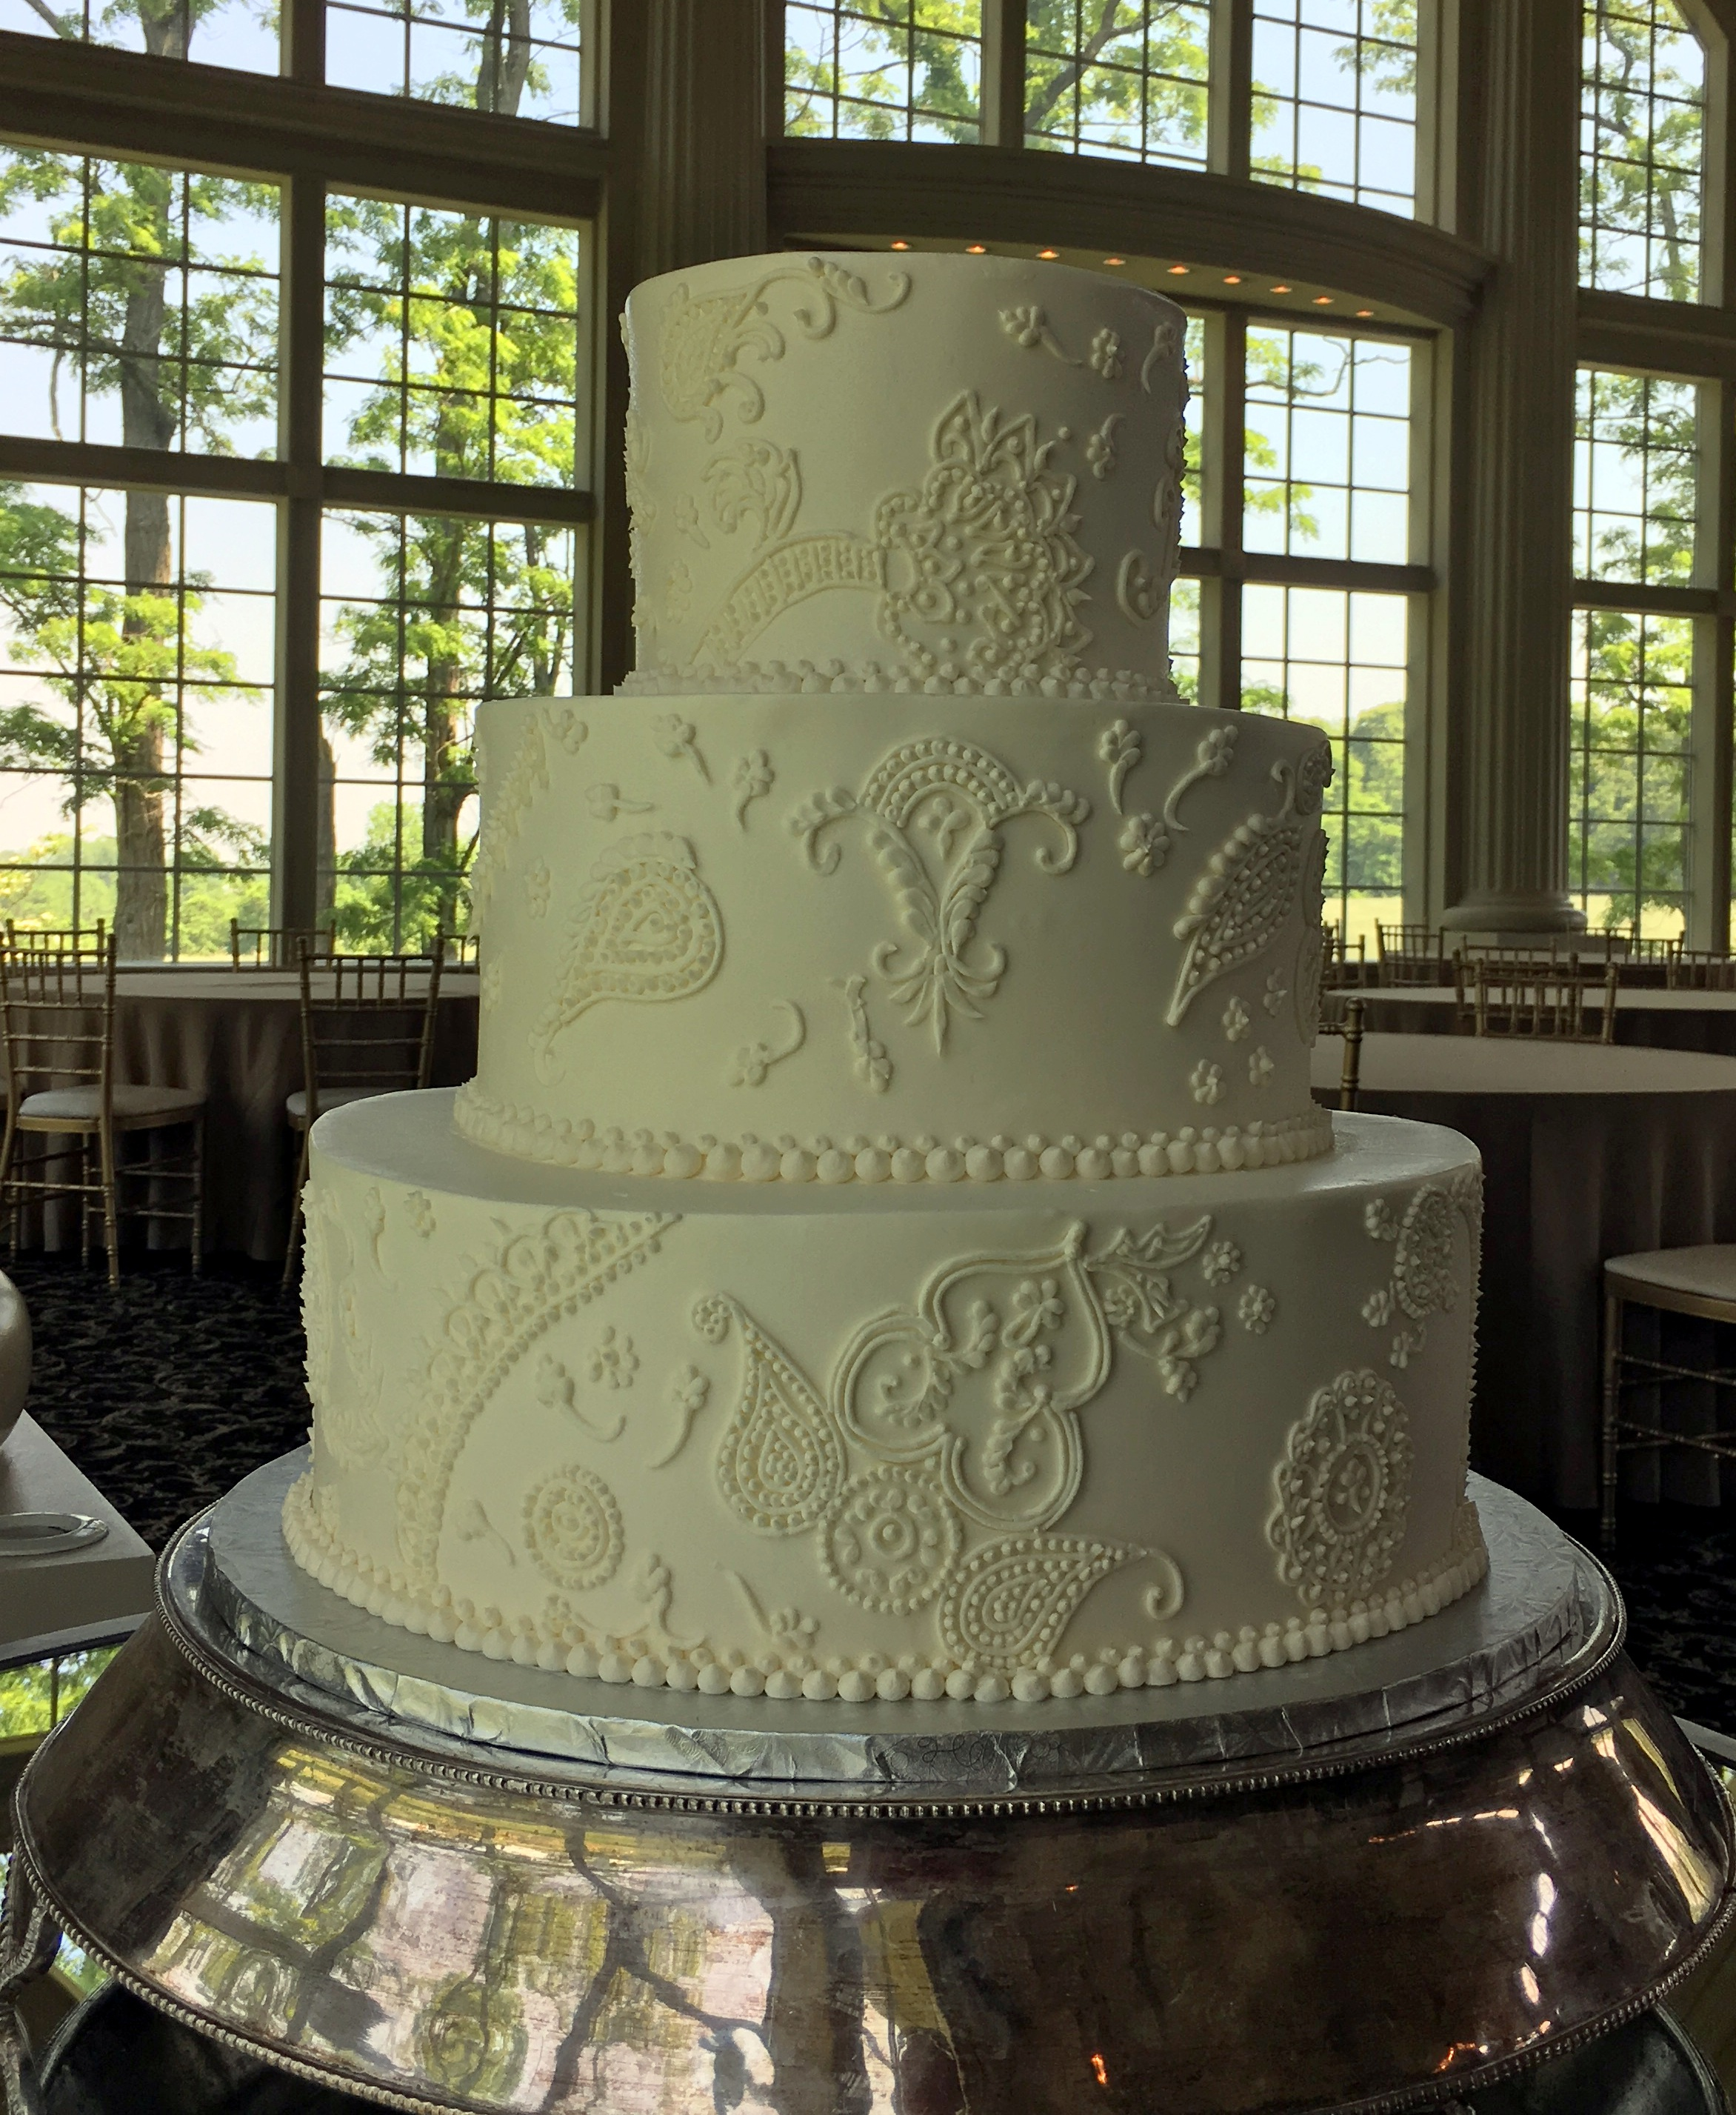 piping wedding cake designs wedding cakes piping 13 the bake works 18614